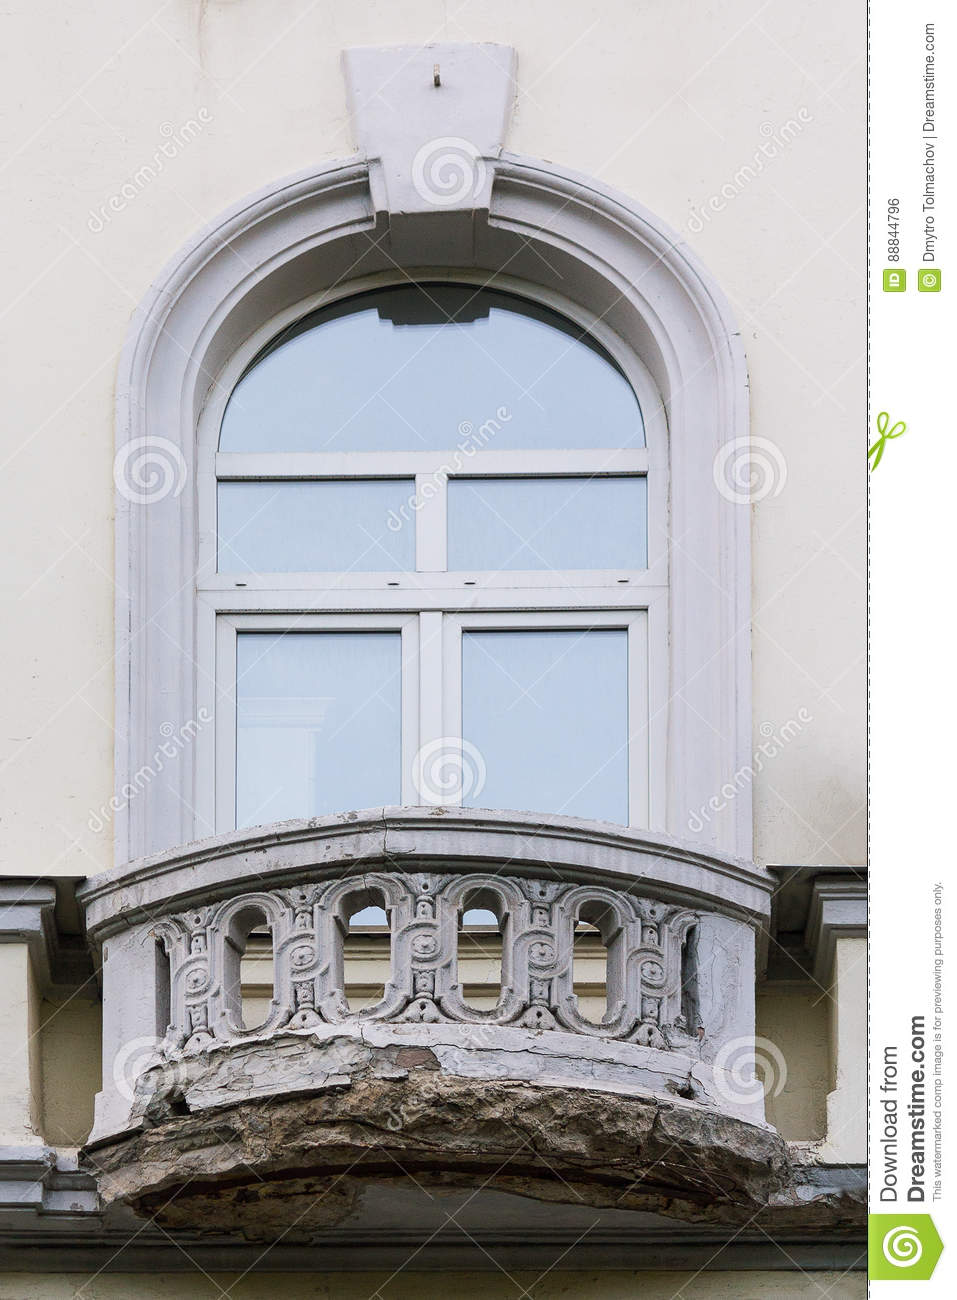 Vew plastic window and an old vintage balcony